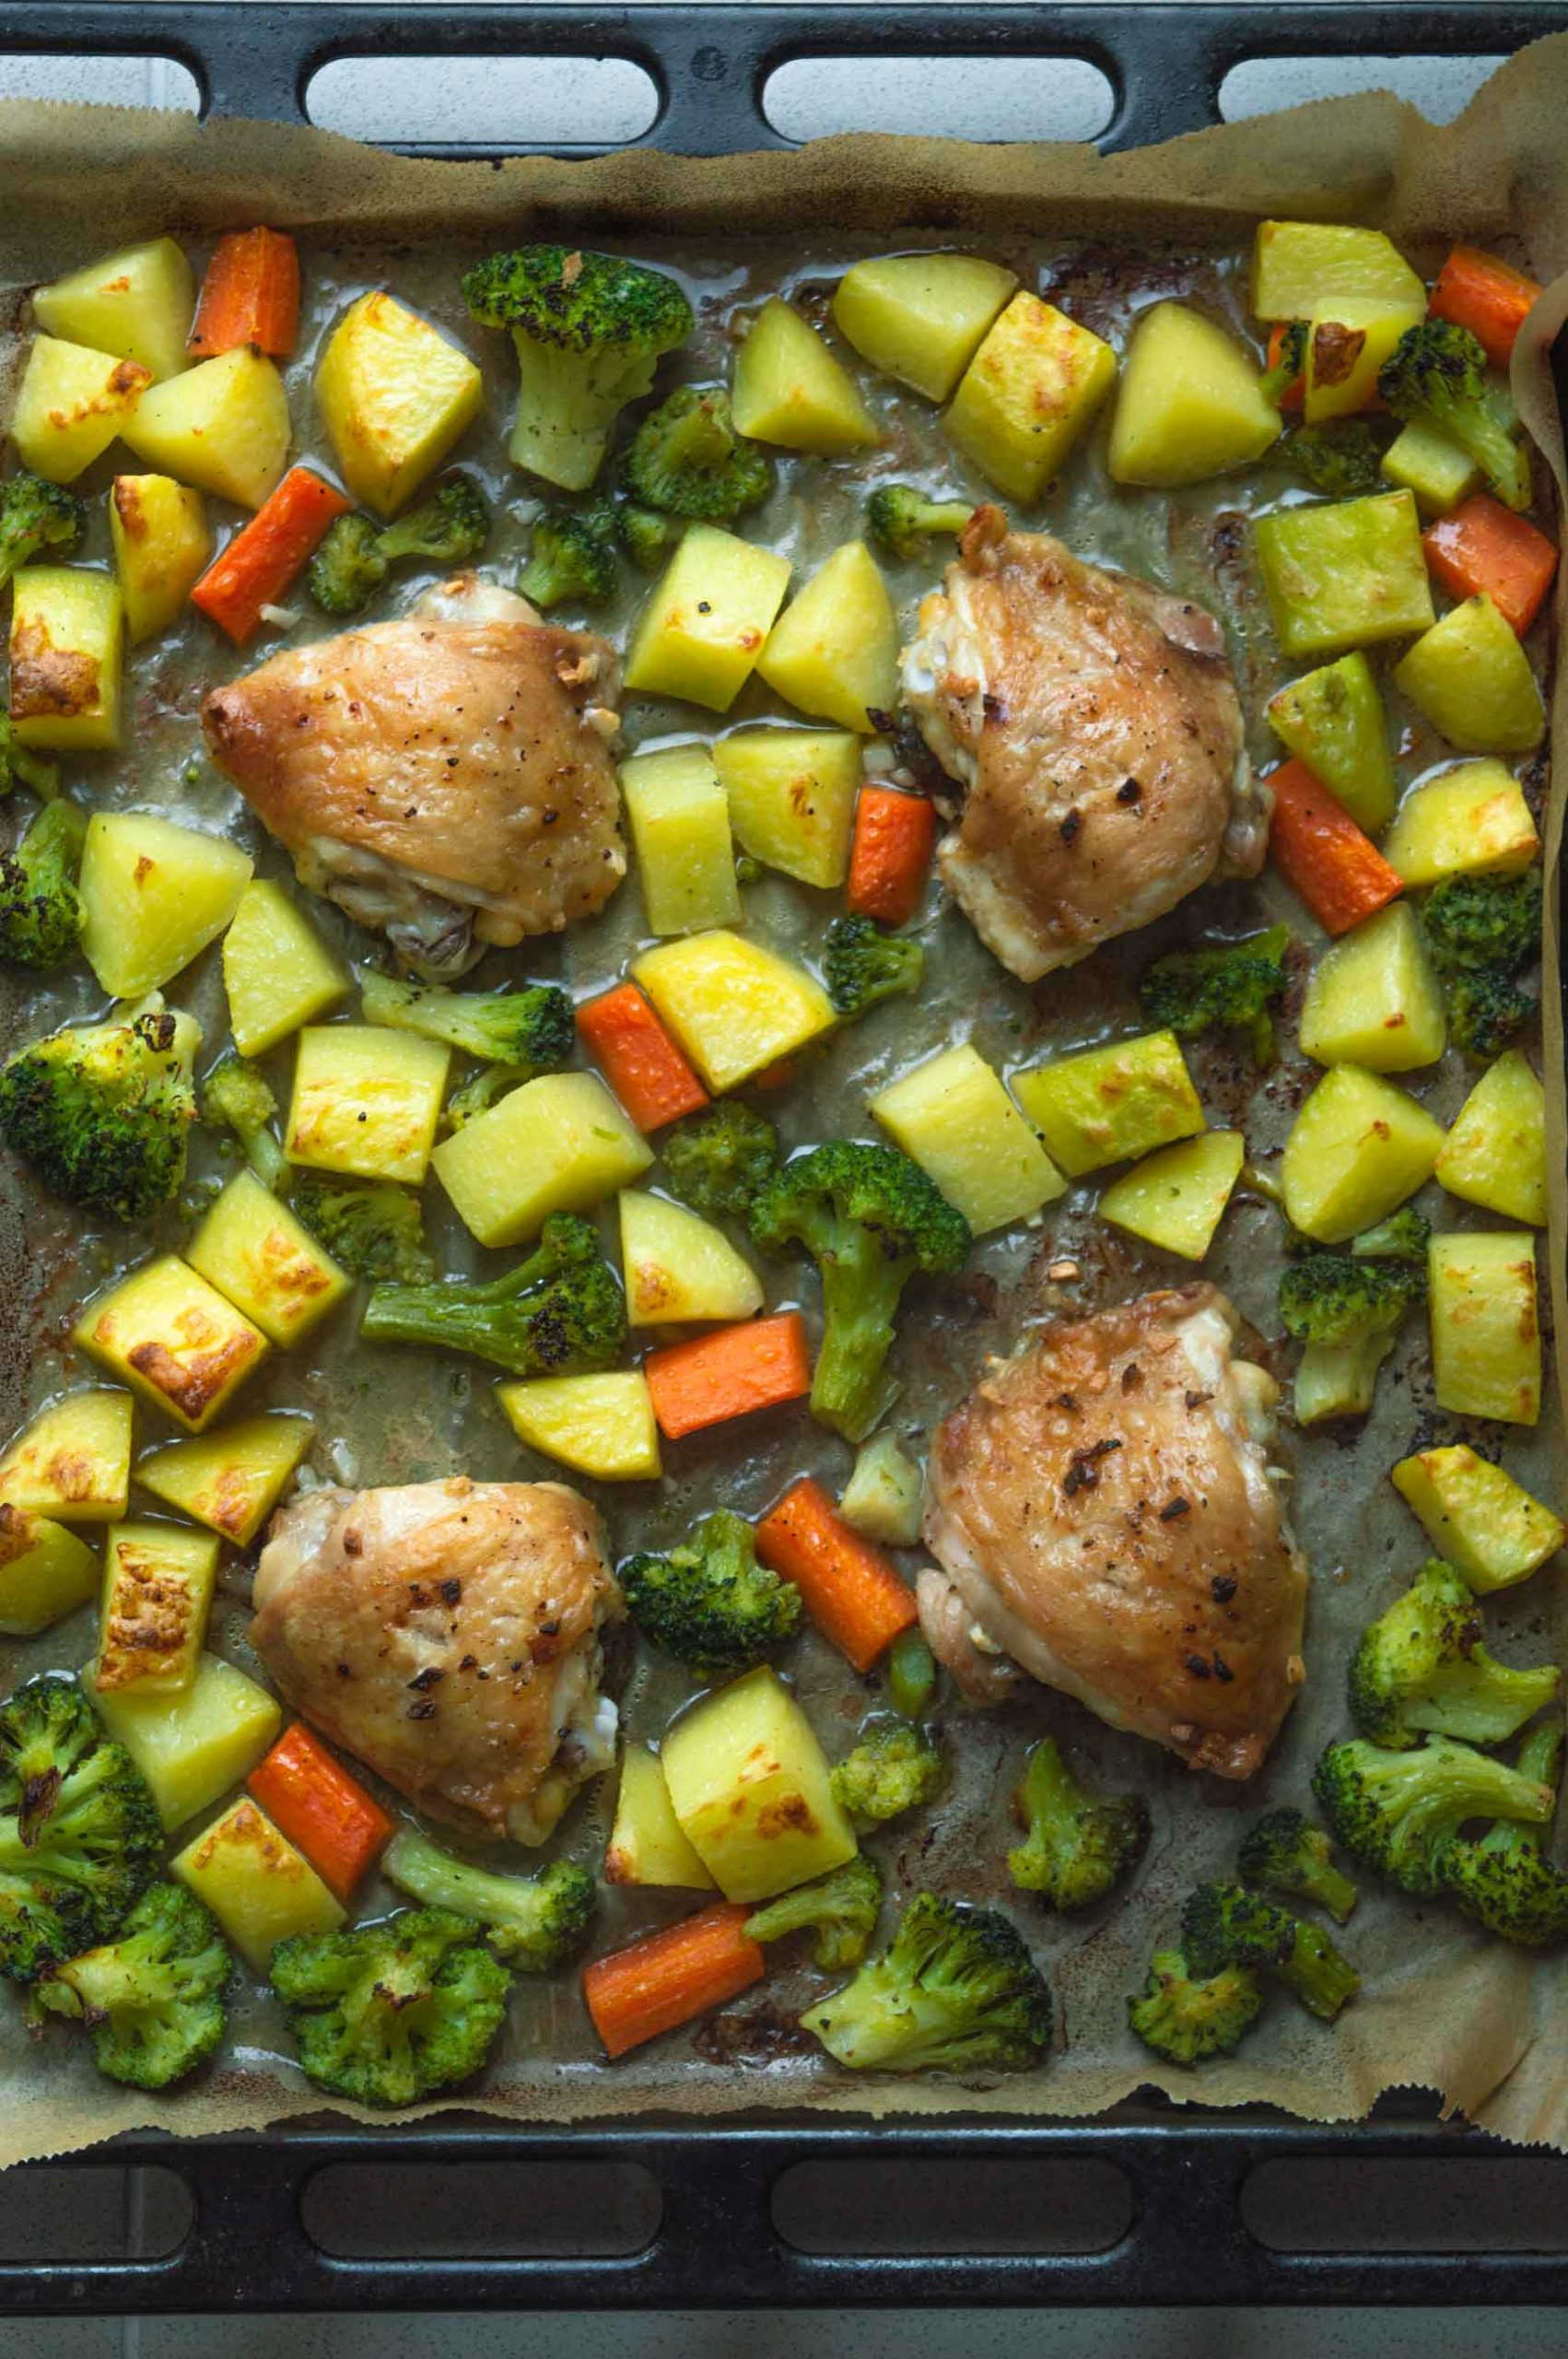 chicken thighs with broccoli and potatoes on sheet pan cooked